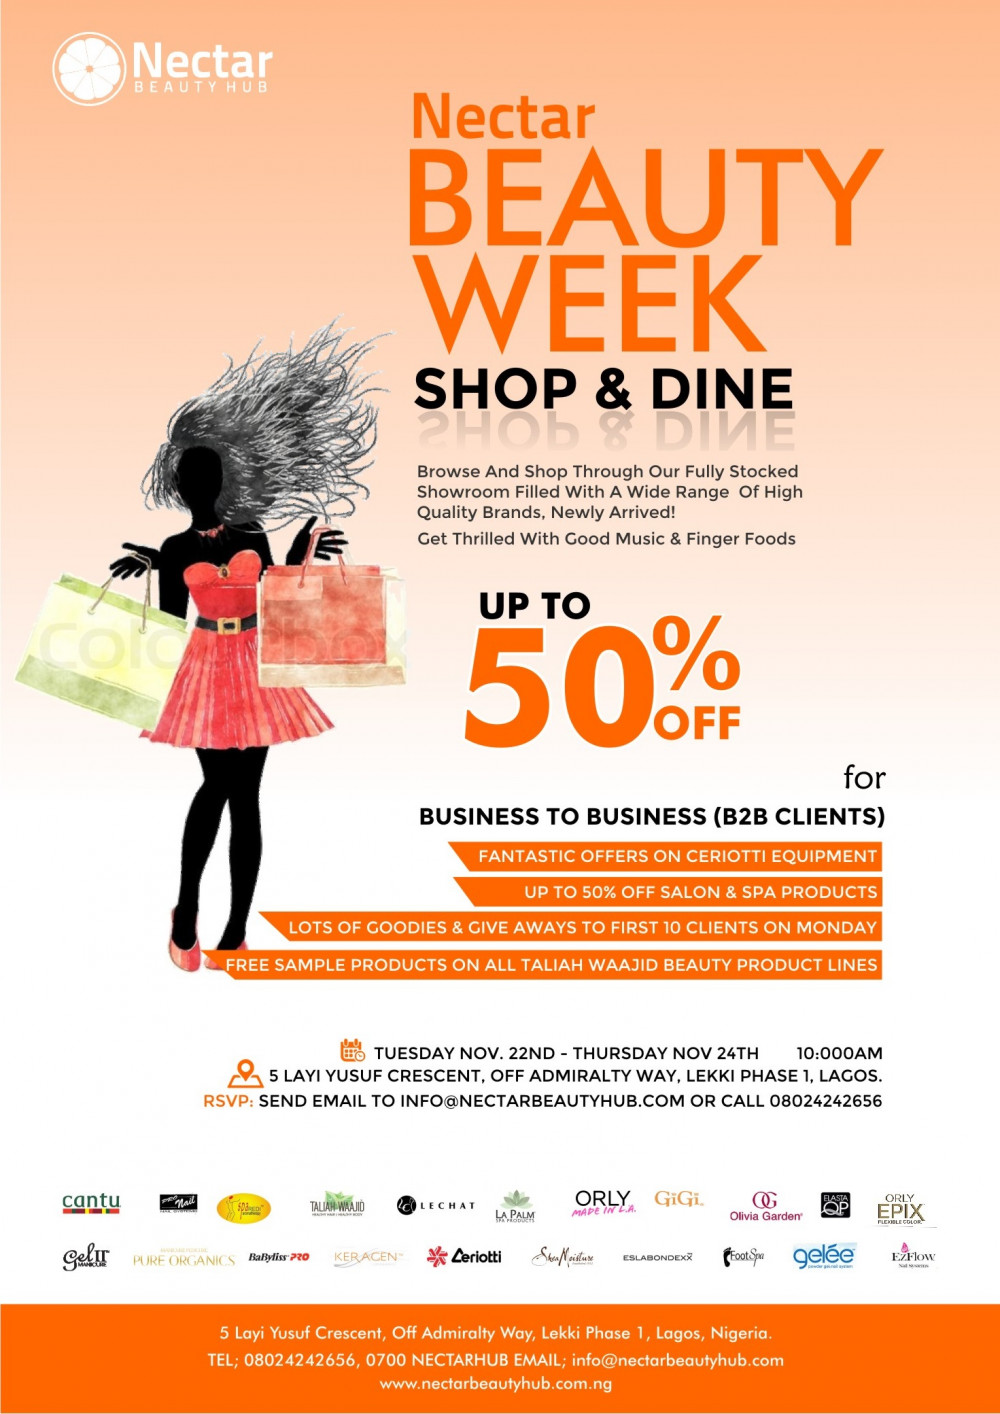 406dedd45a5 Enjoy the Ultimate Shopping Experience at The Nectar Beauty Week ...